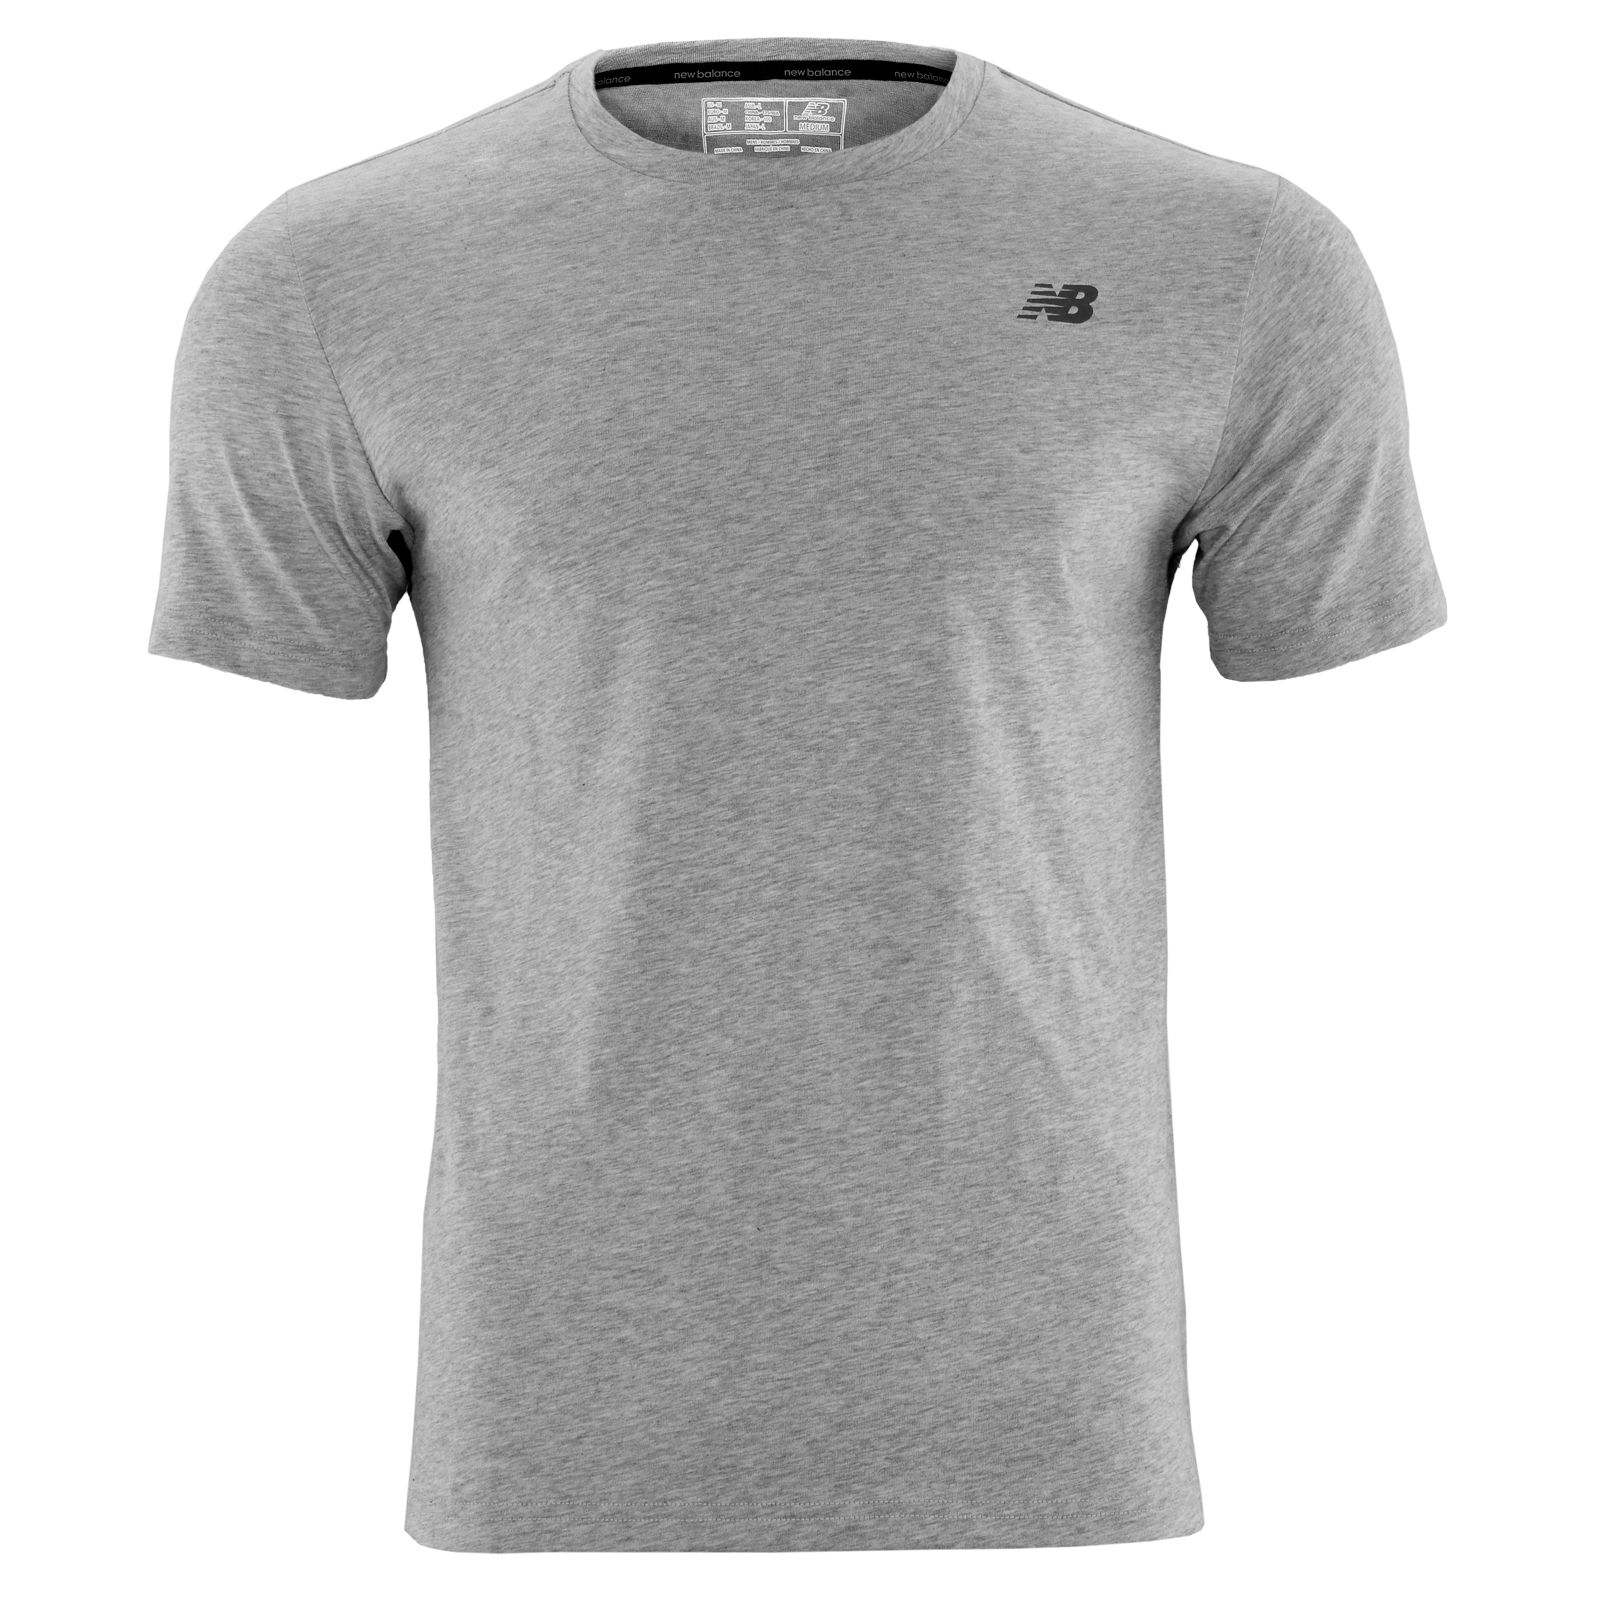 Warrior - Heather Tech Tee - Men s -  904acbf9b